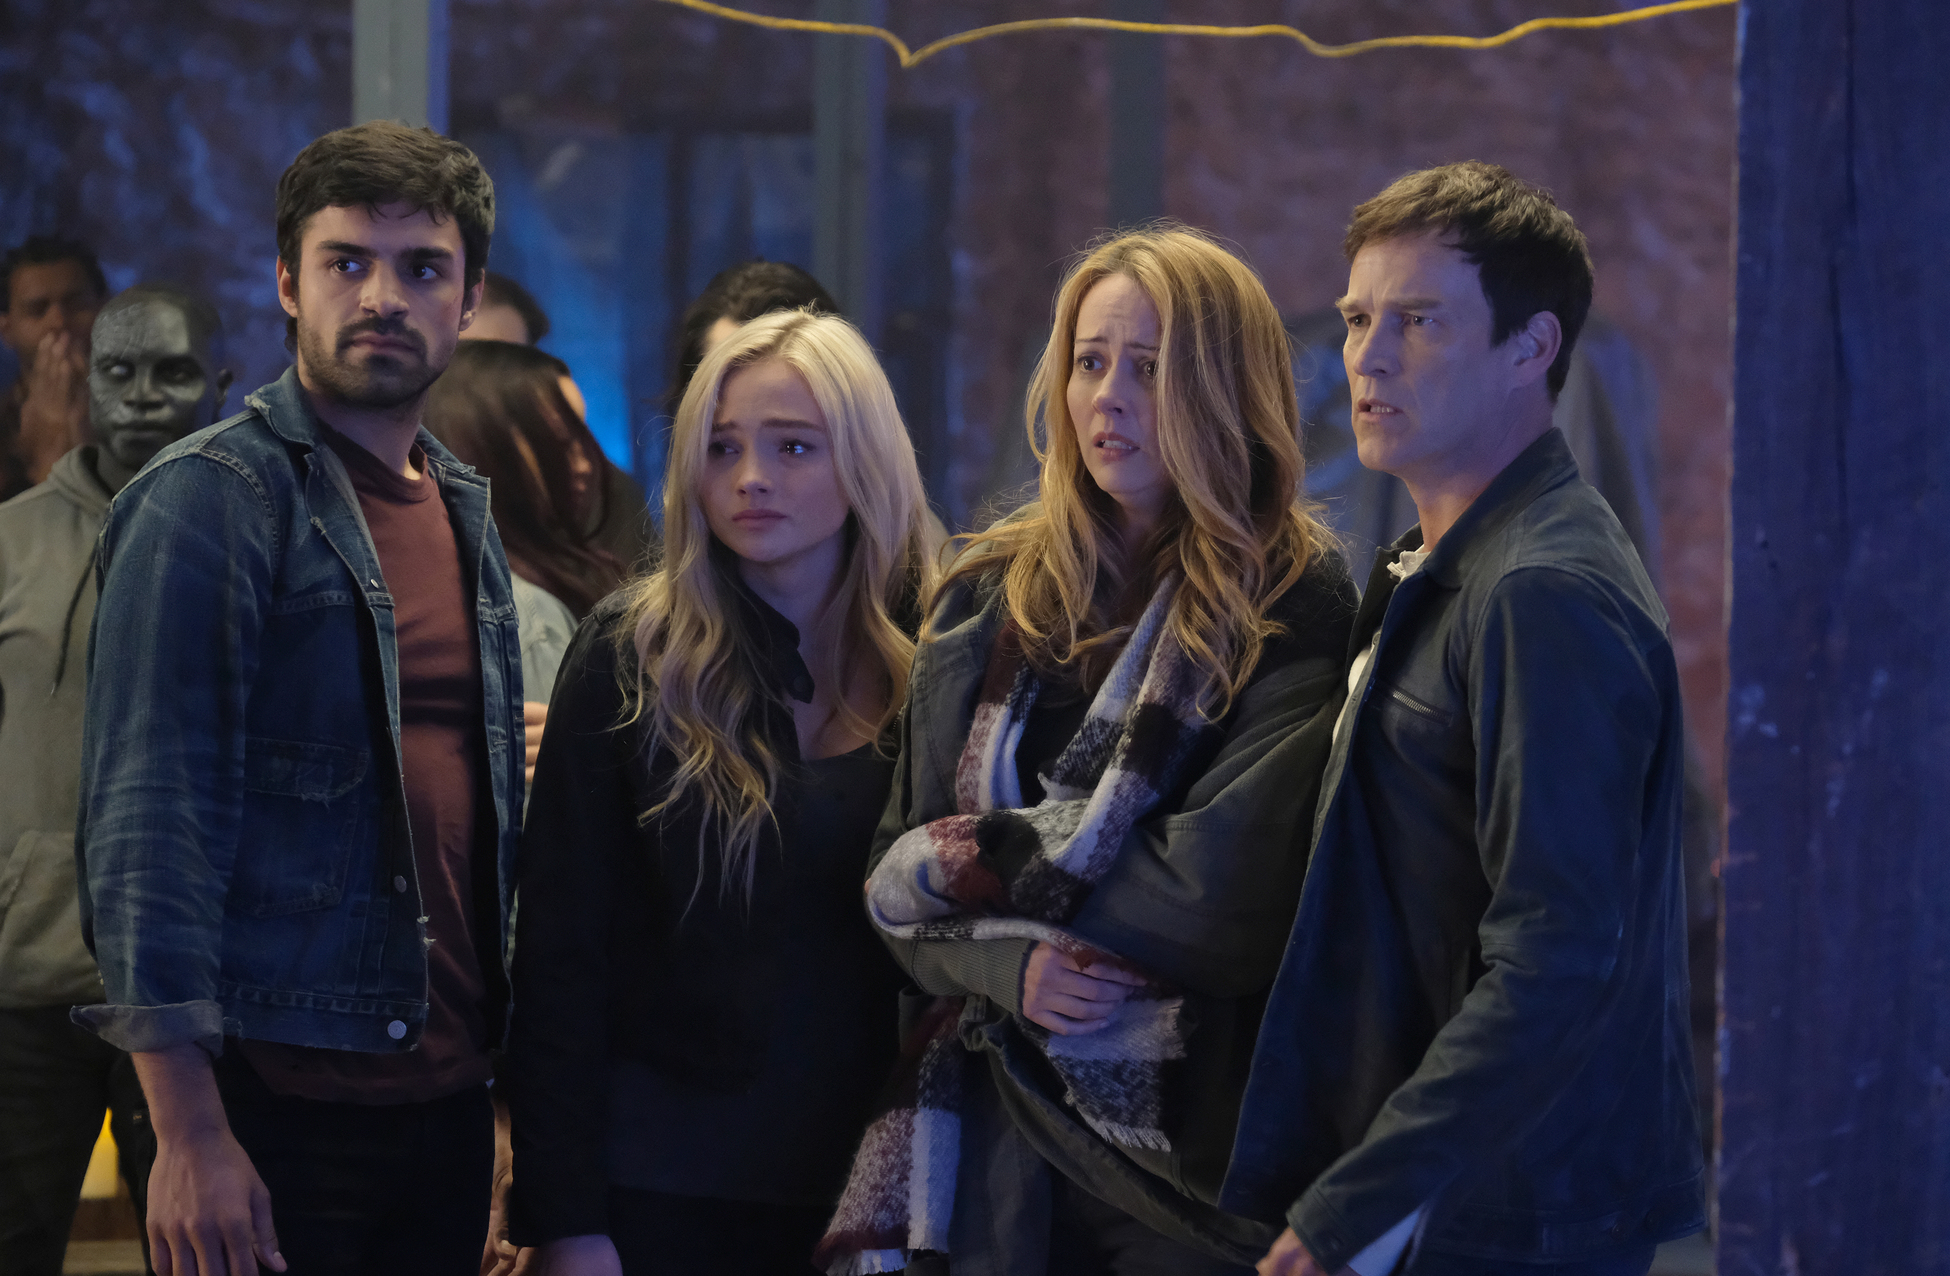 Amy Acker, Stephen Moyer, Natalie Alyn Lind, Sean Teale, and Jermaine Rivers in The Gifted (2017)